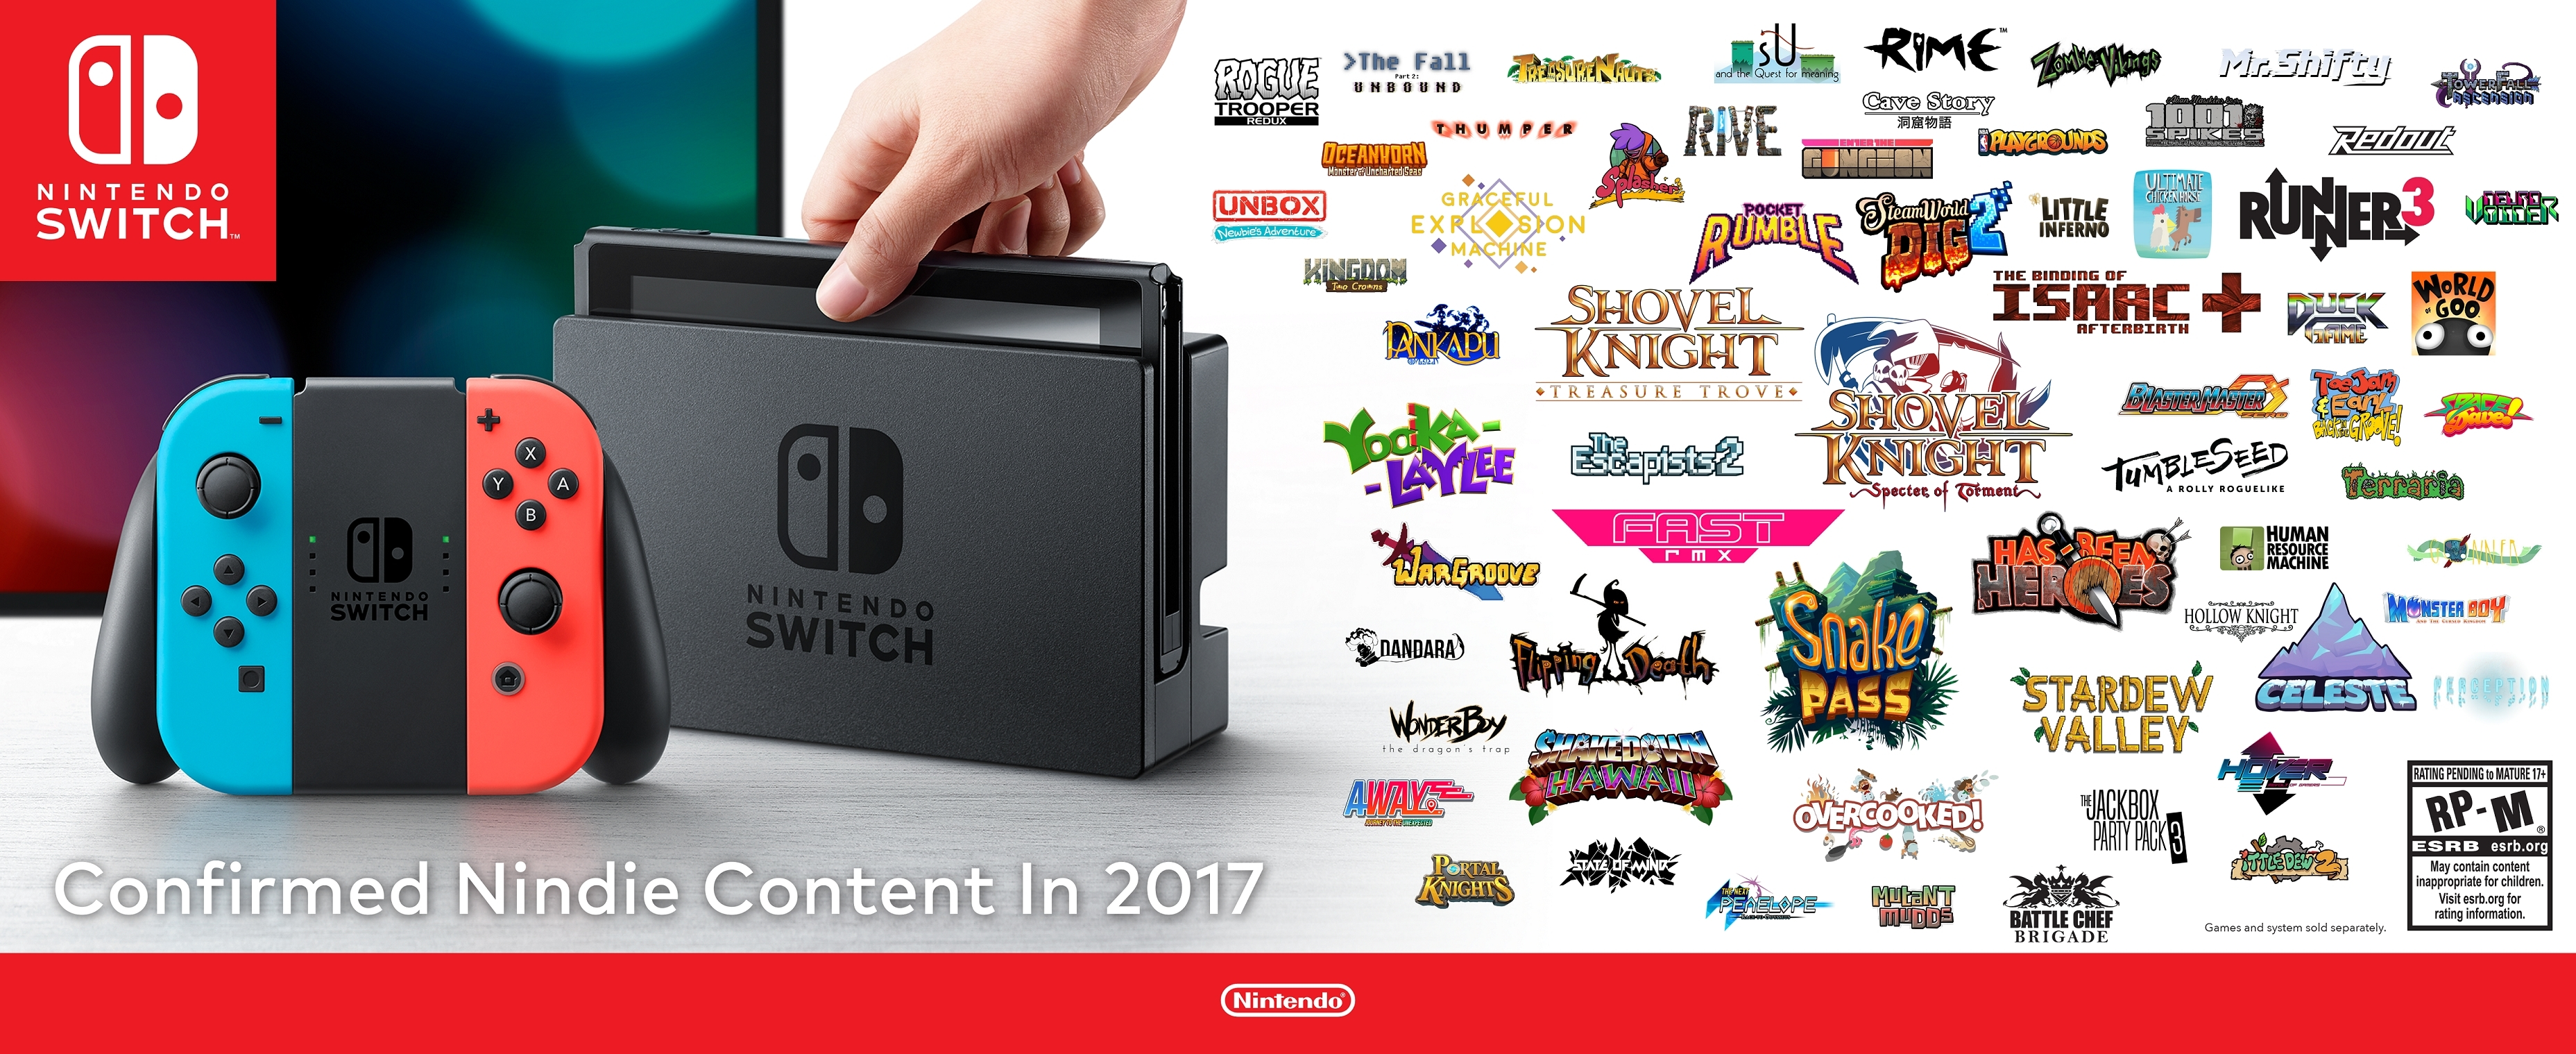 Nintendo News Nintendo Reveals New Partnerships And First Indie Games Coming To Nintendo Eshop On Nintendo Switch Business Wire